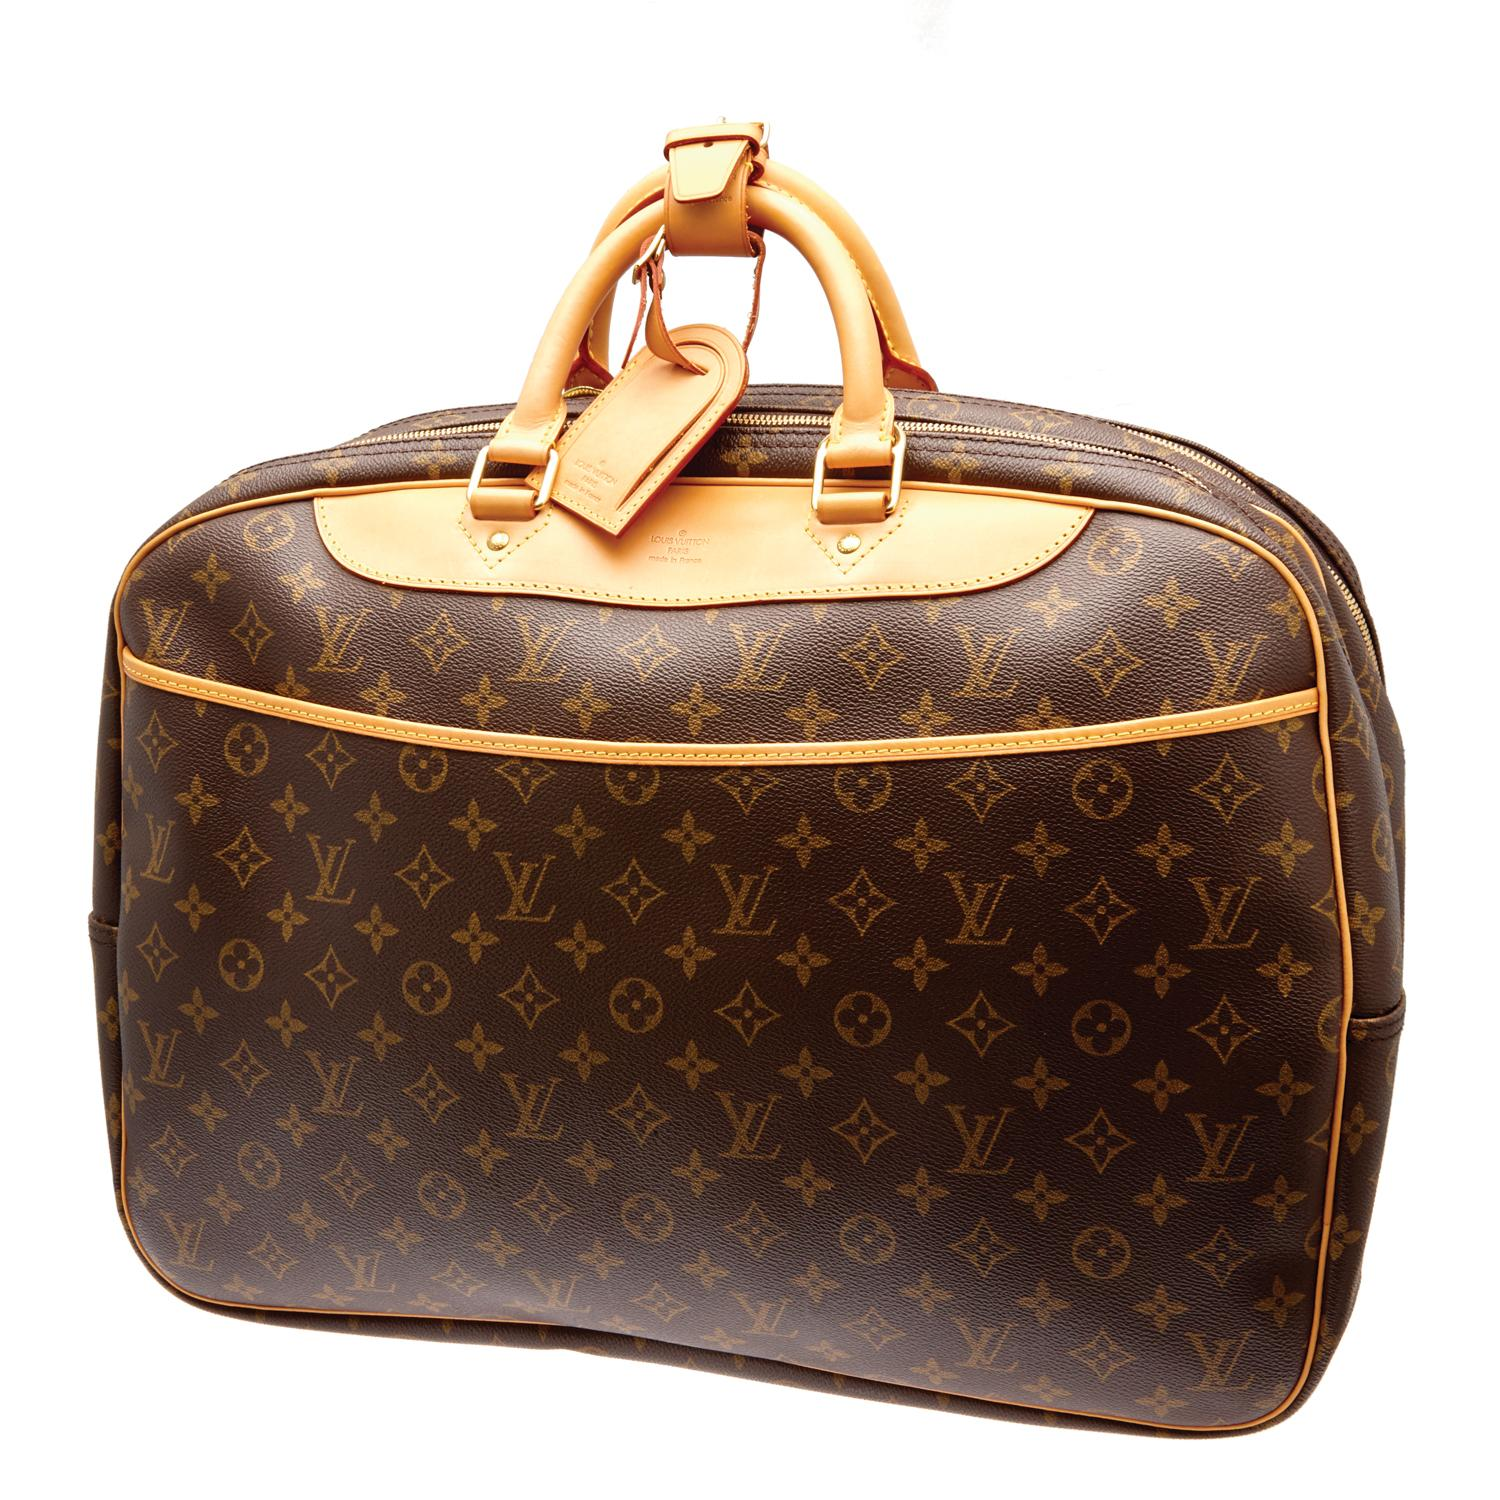 e49872d6ecdf Lot 22 of 185  Louis Vuitton Alize 24 Heures Travel Bag